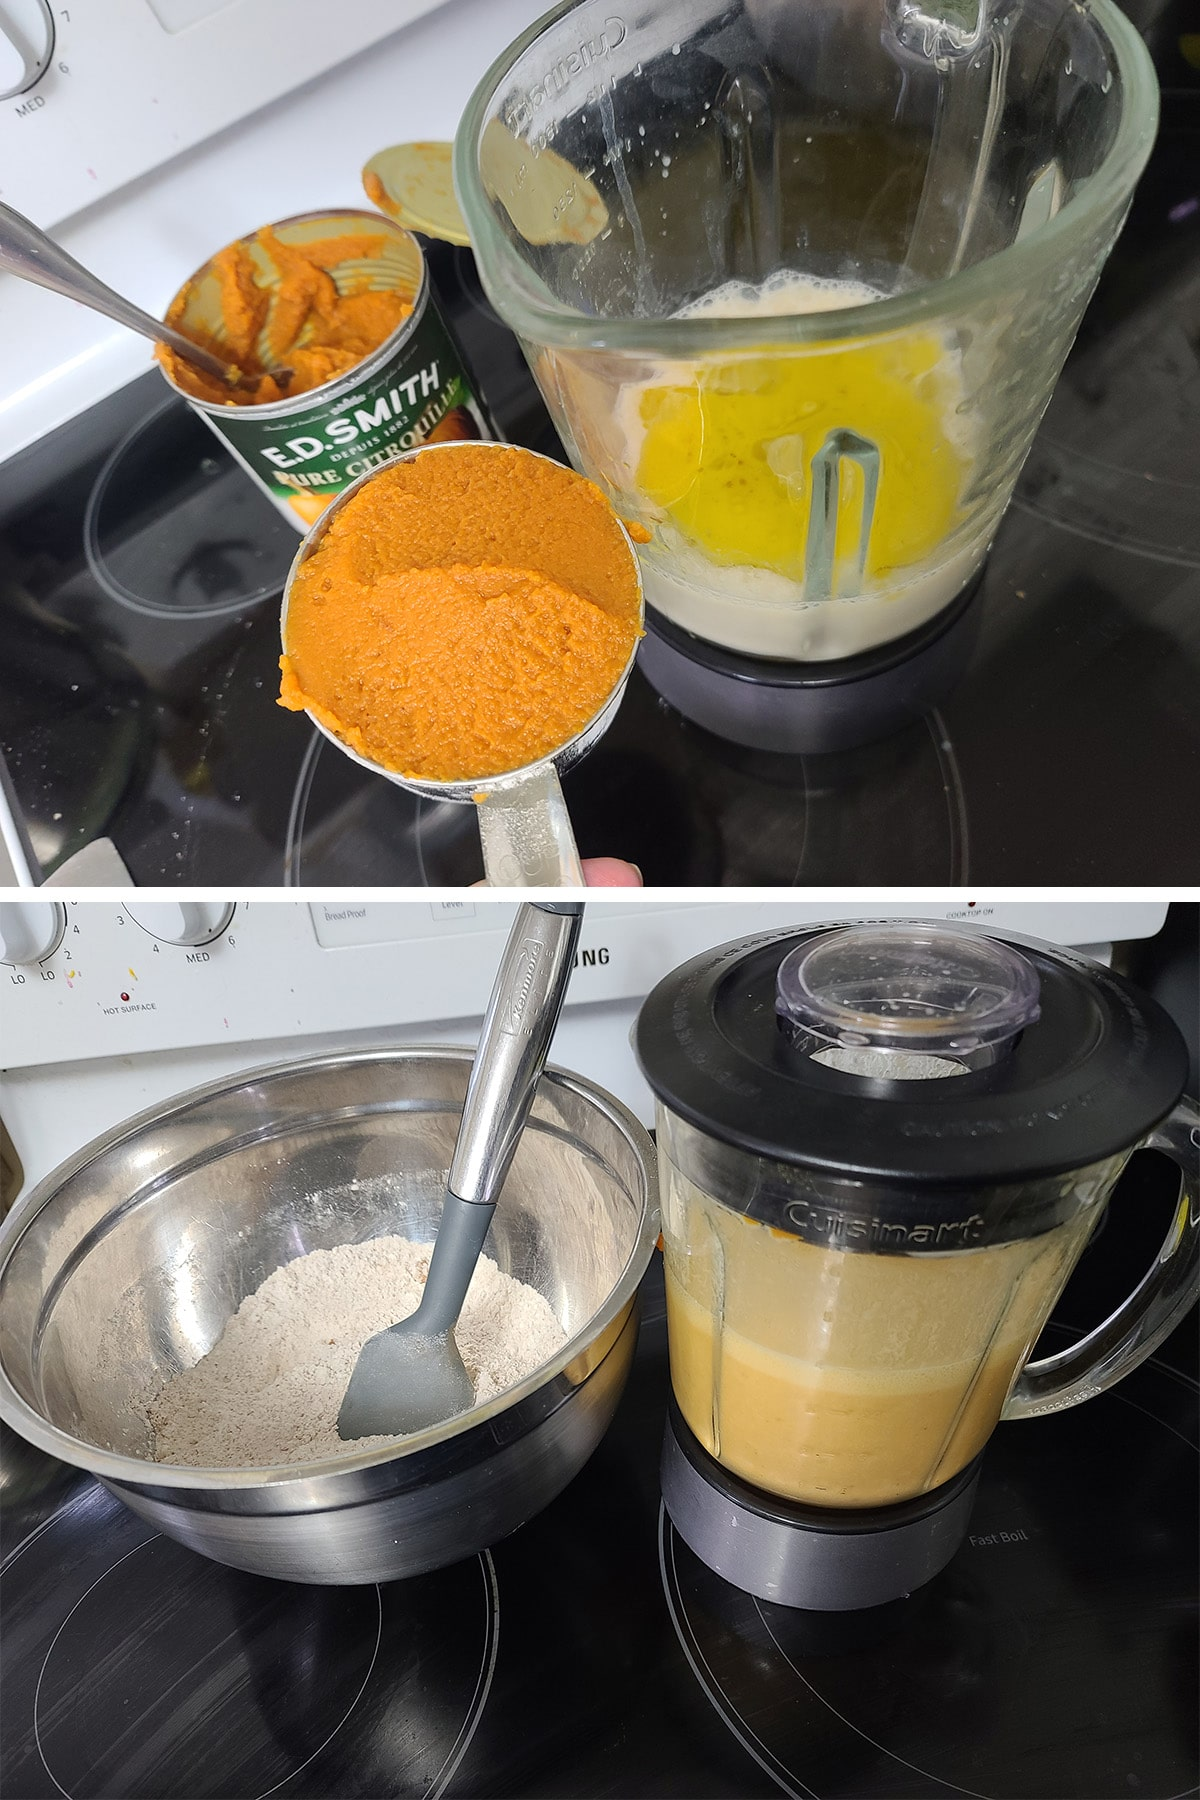 The wet ingredients being added to a blender, and blended.